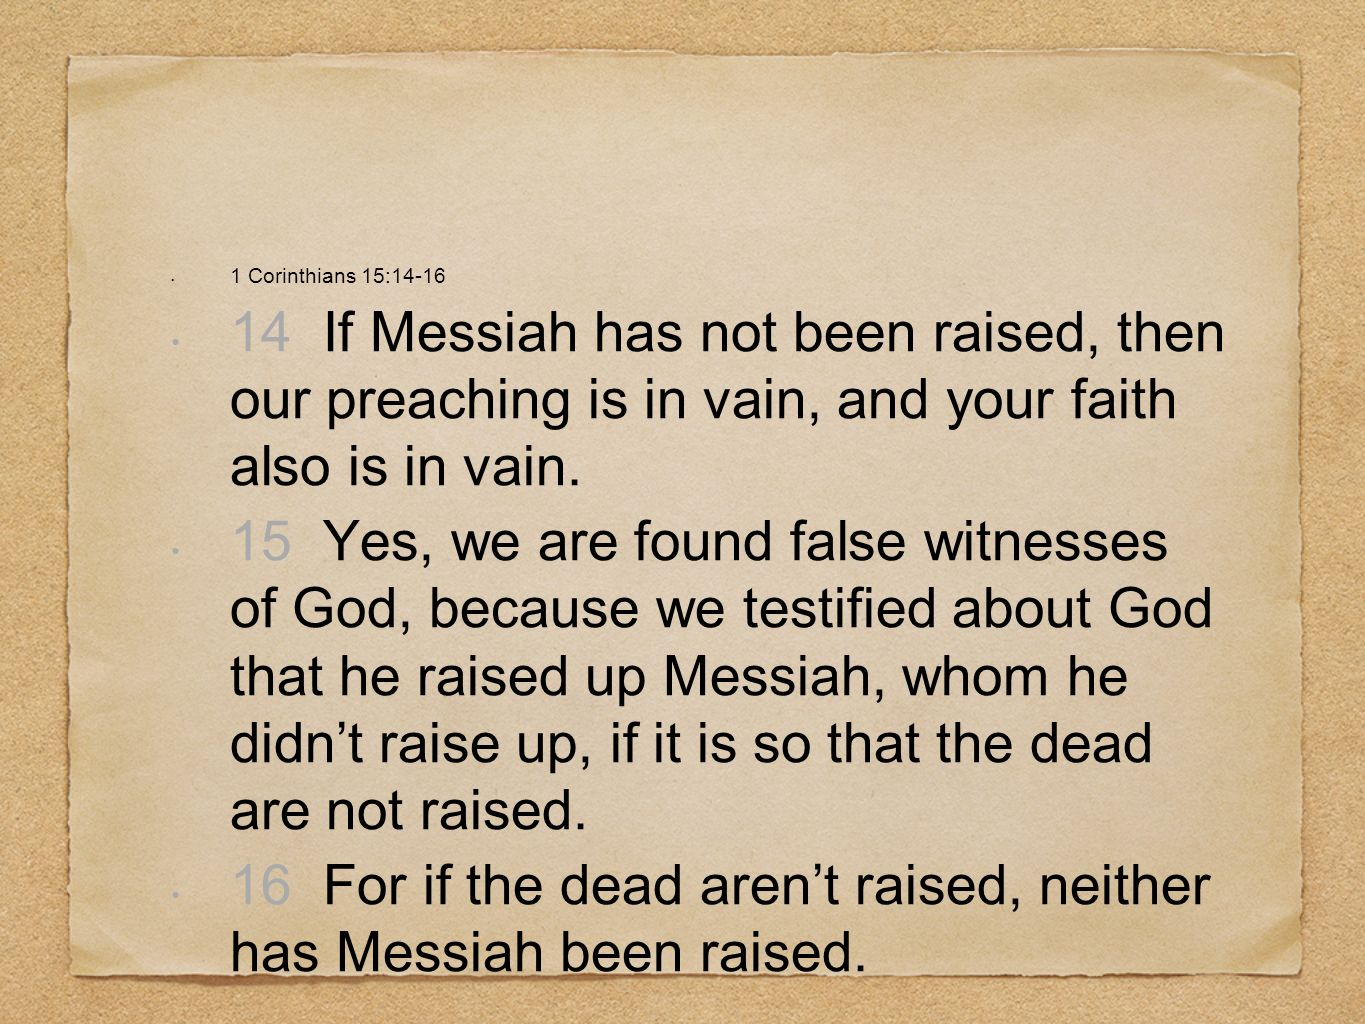 16 For if the dead aren't raised, neither has Messiah been raised.